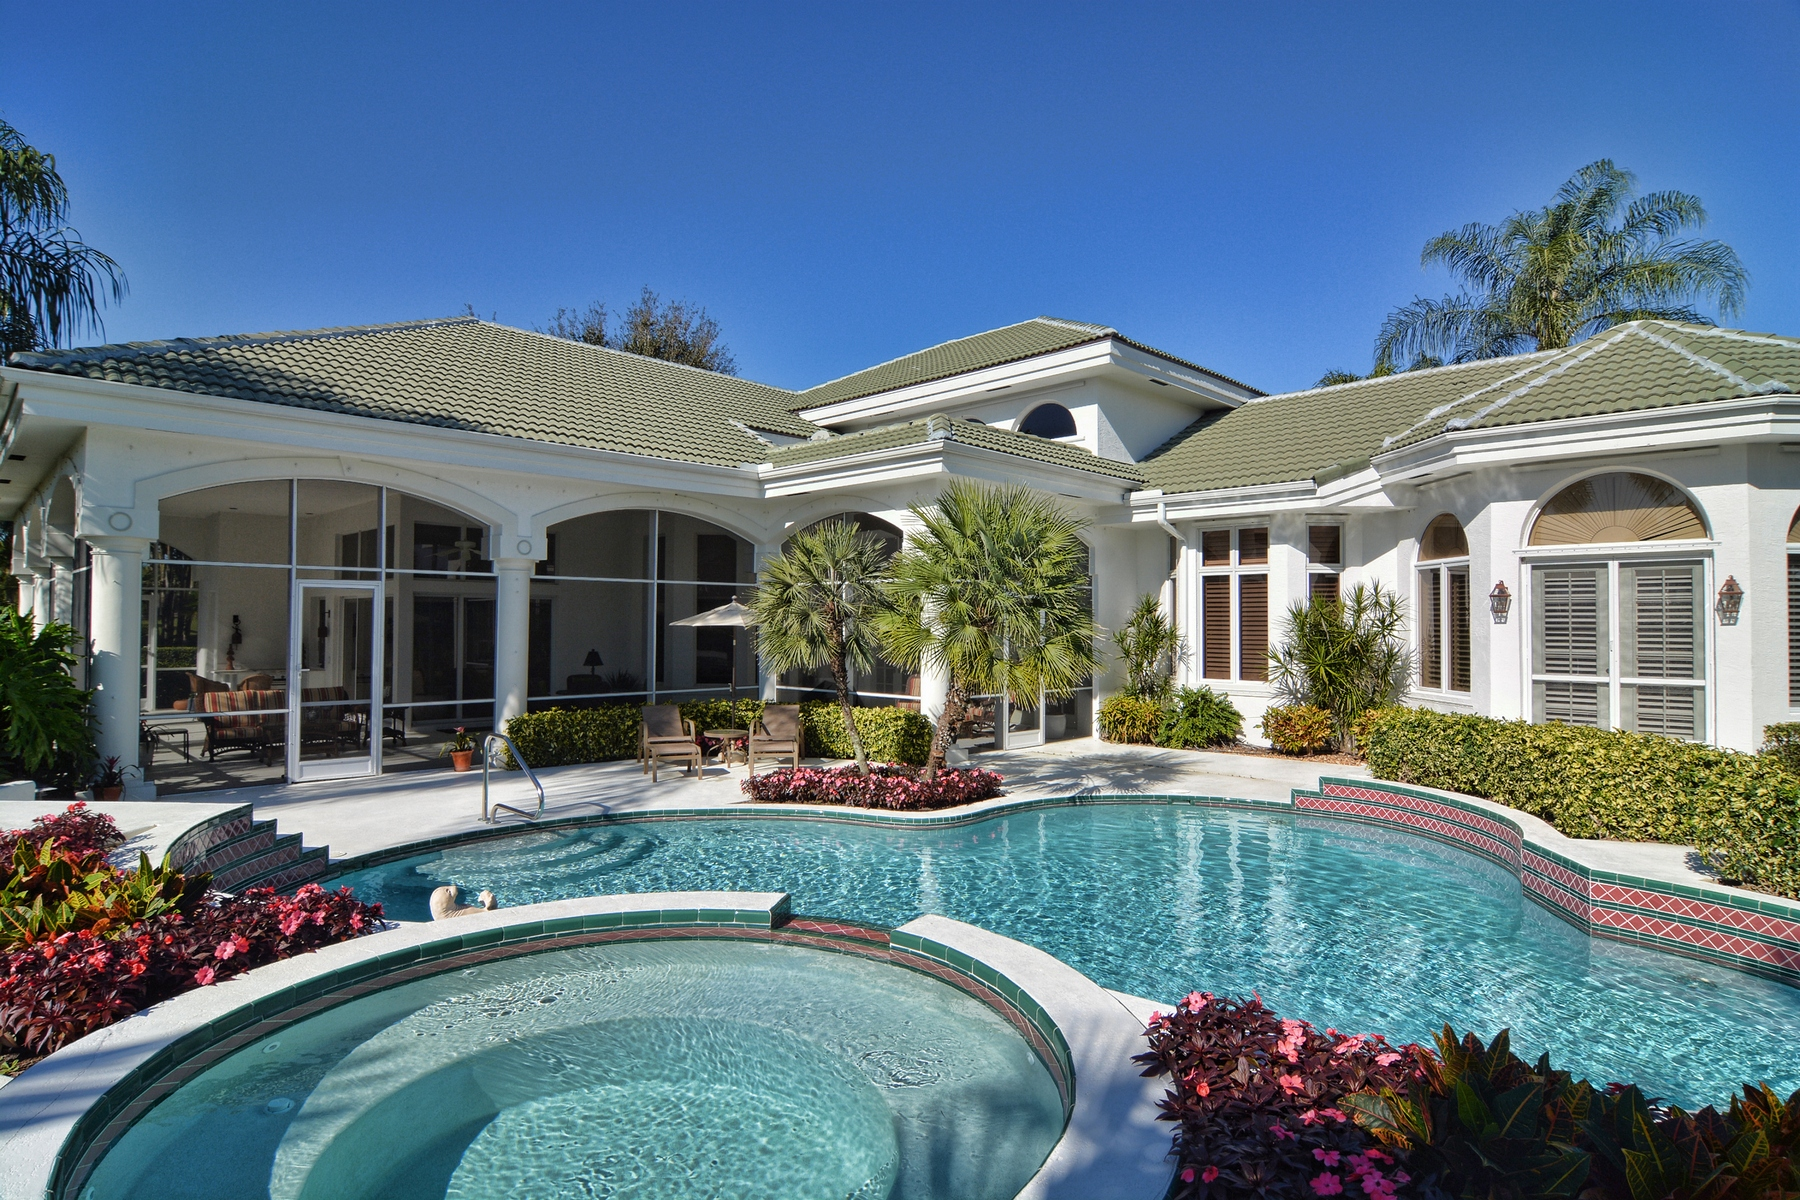 Single Family Home for Sale at 218 Echo Drive The Loxahatchee Club, Jupiter, Florida, 33458 United States